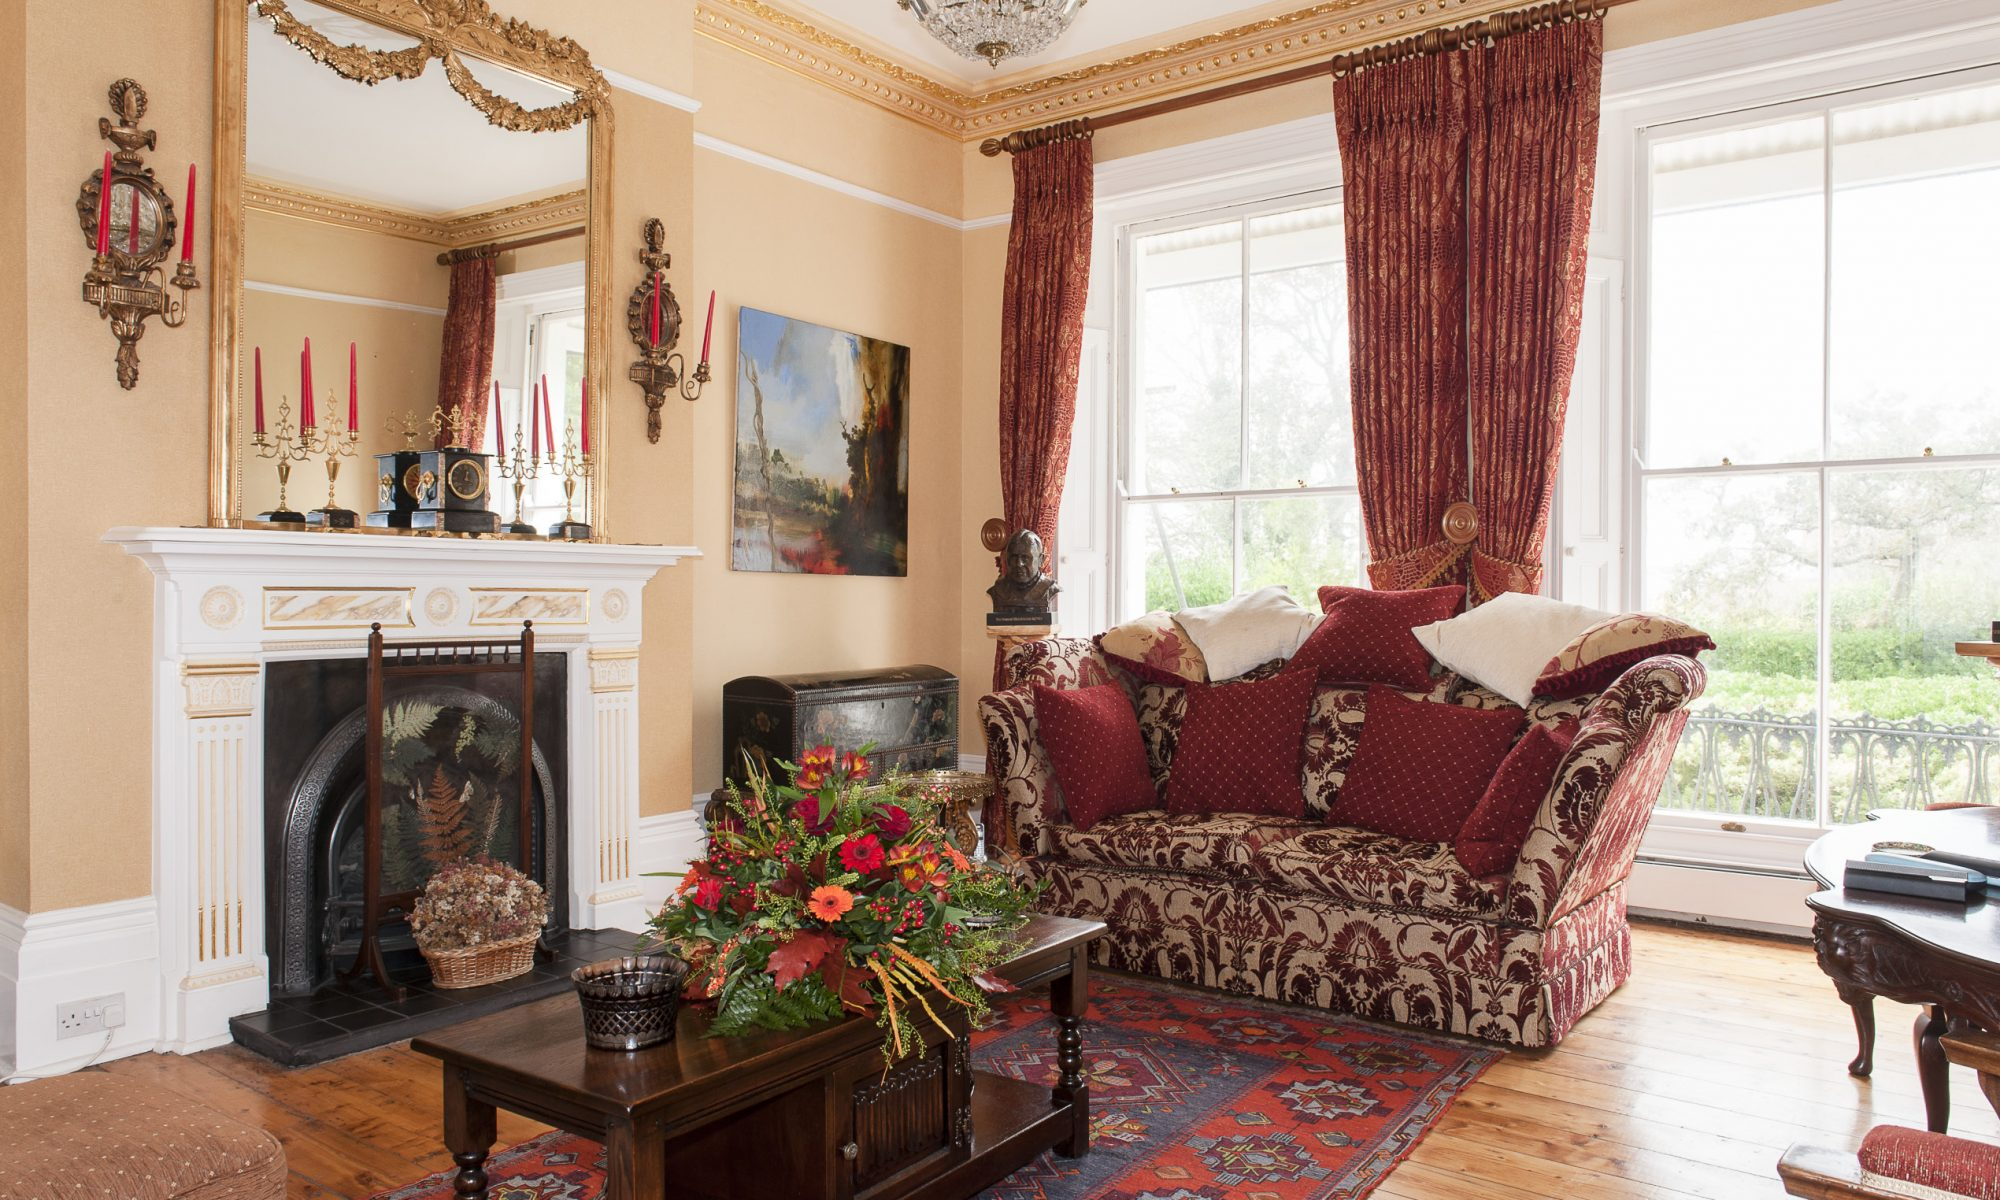 In the drawing room, above the grand white faux marble fireplace finished by Hastings specialist painter Alan Kent, is a massive gilt mirror in which is reflected the room's pièce de résistance